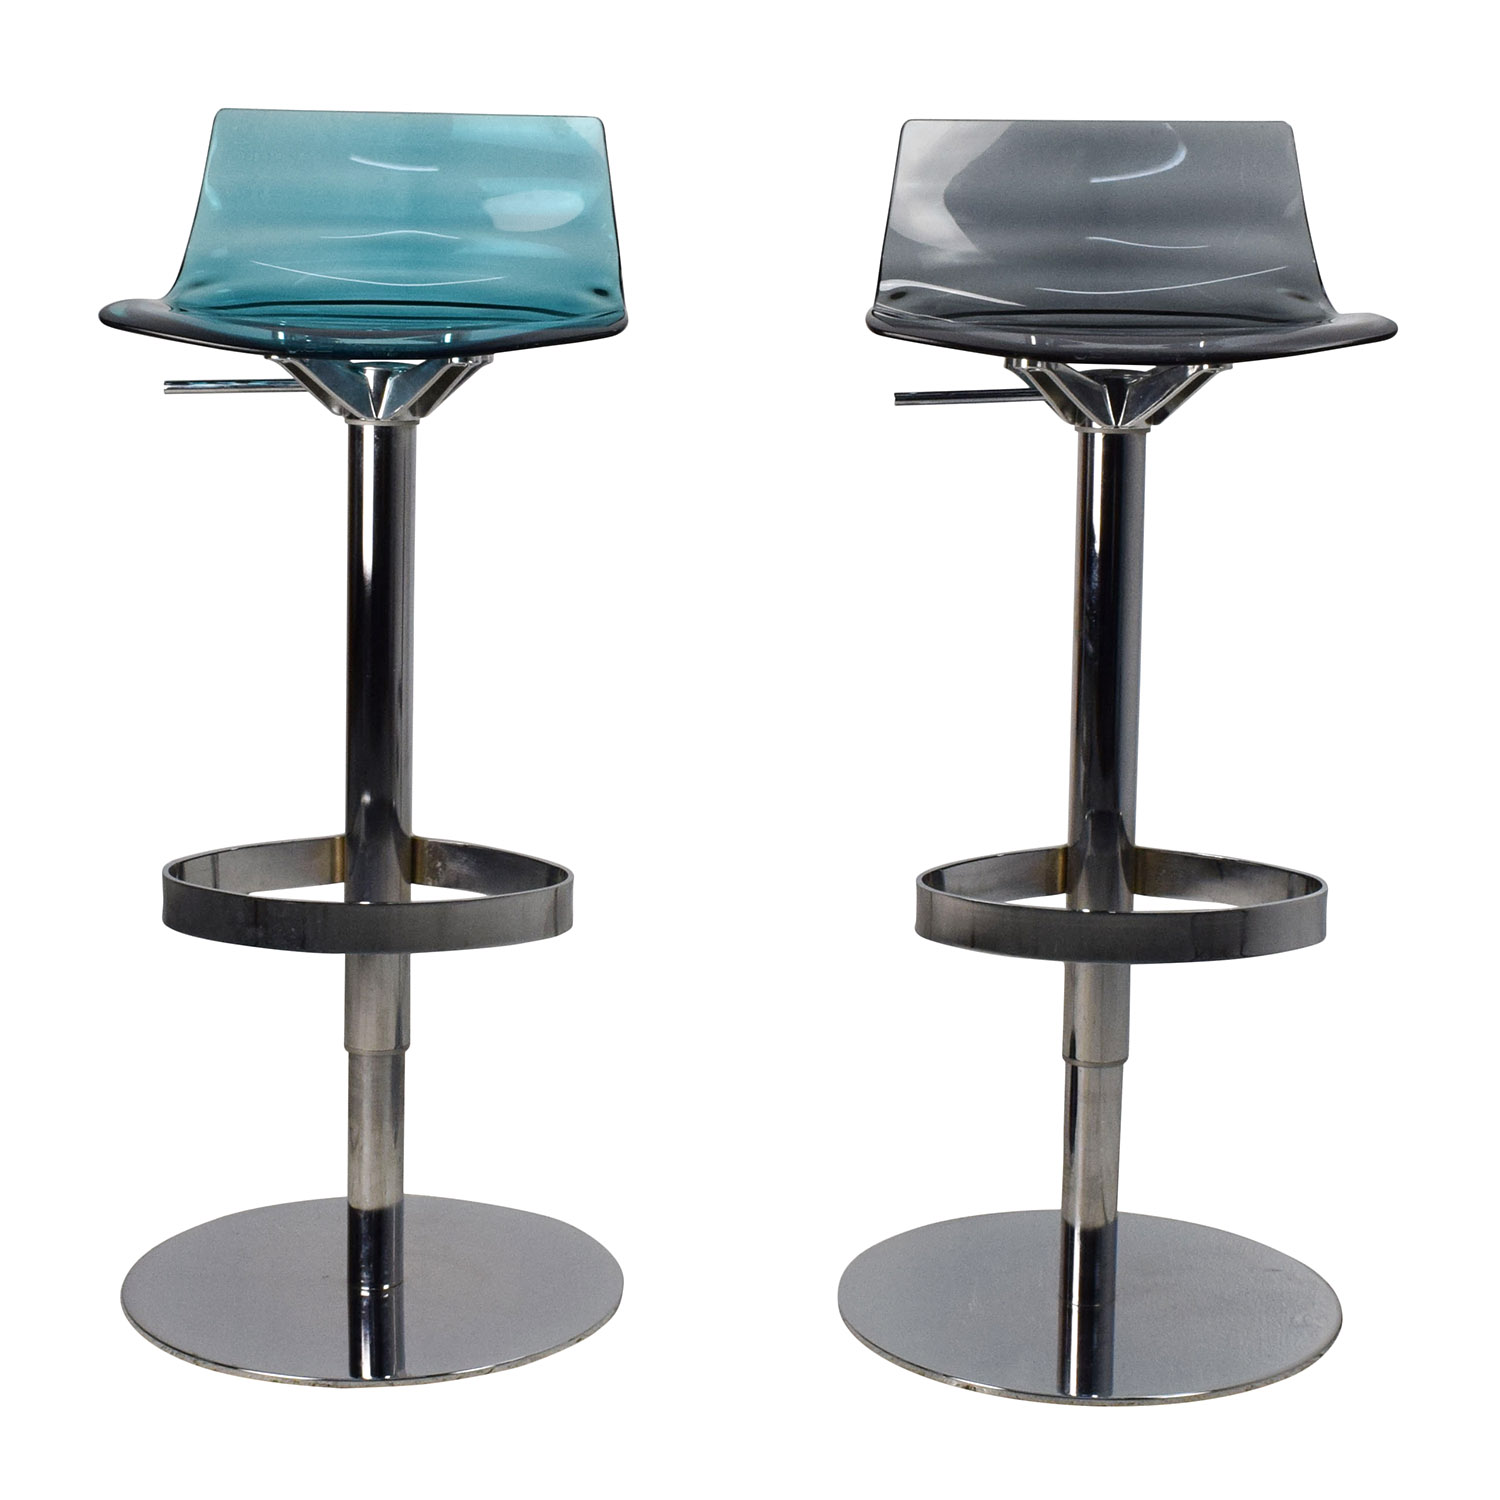 87% OFF - Calligaris Calligaris L\'Eau Adjustable Swivel Bar Stool Pair /  Chairs